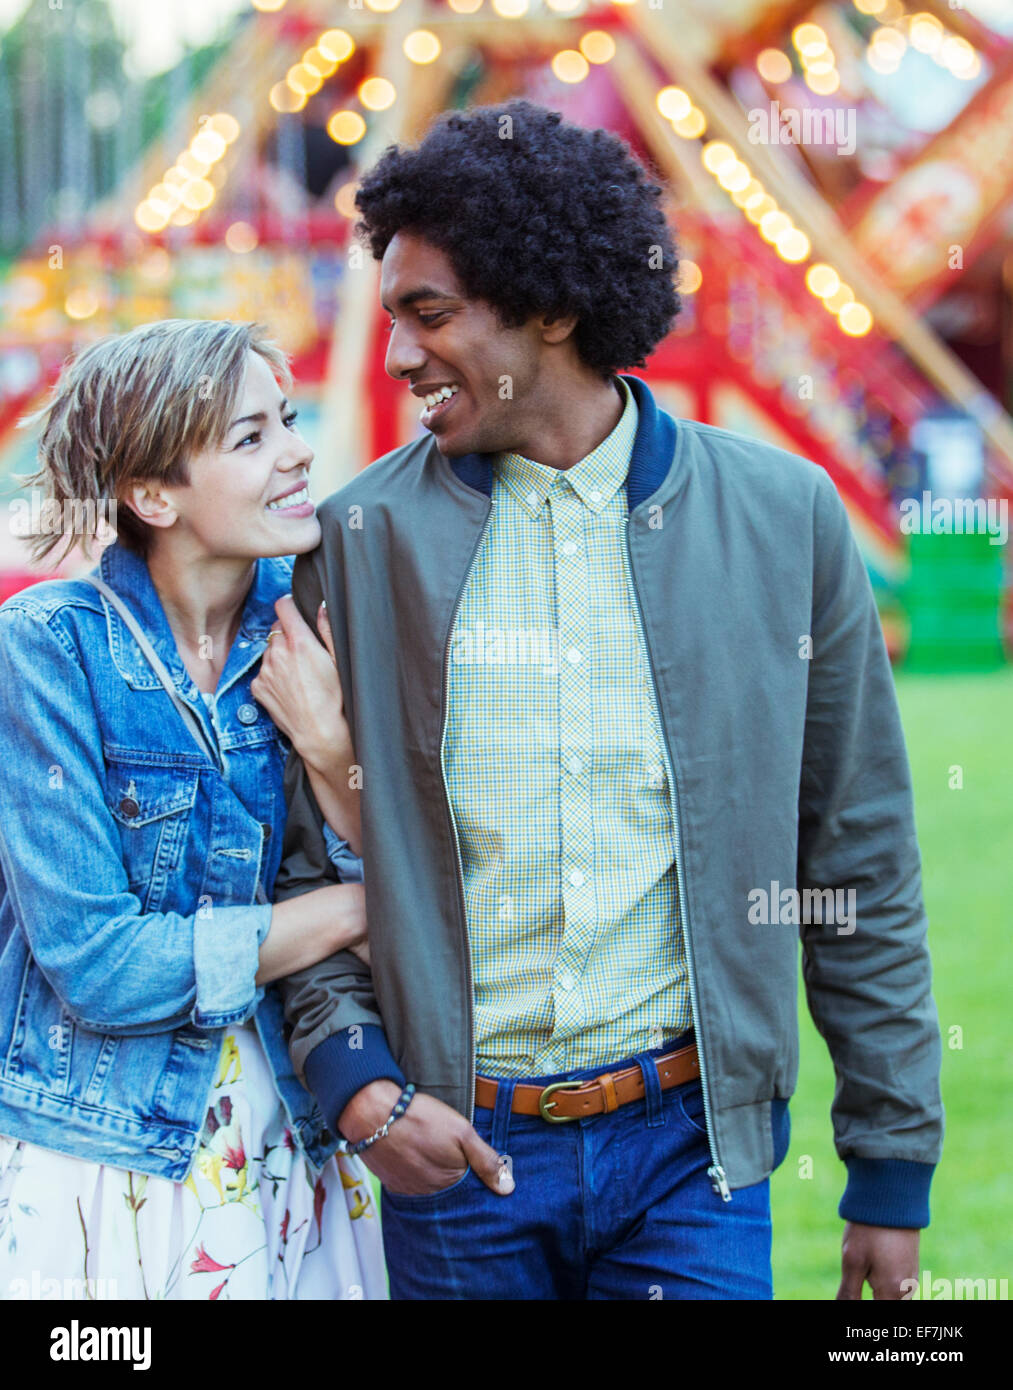 Young multiracial couple smiling to each other in amusement park - Stock Image